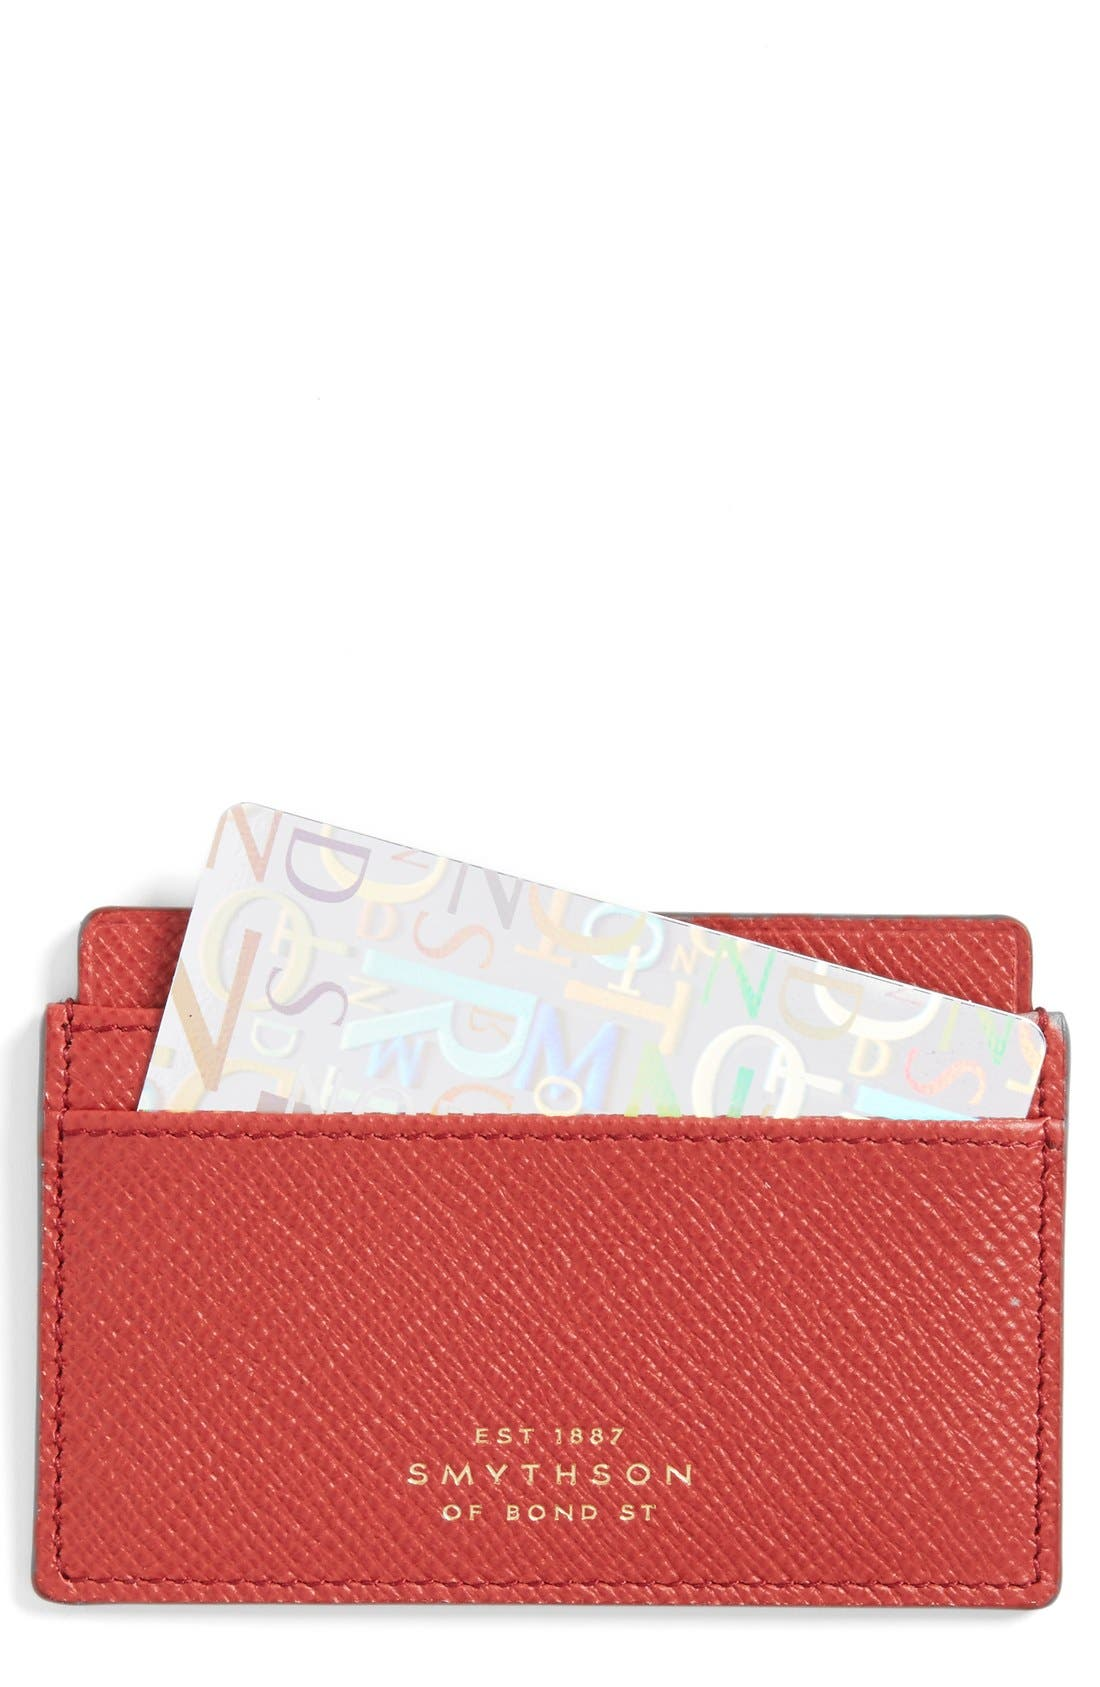 'Panama' Leather Card Case,                         Main,                         color, Red